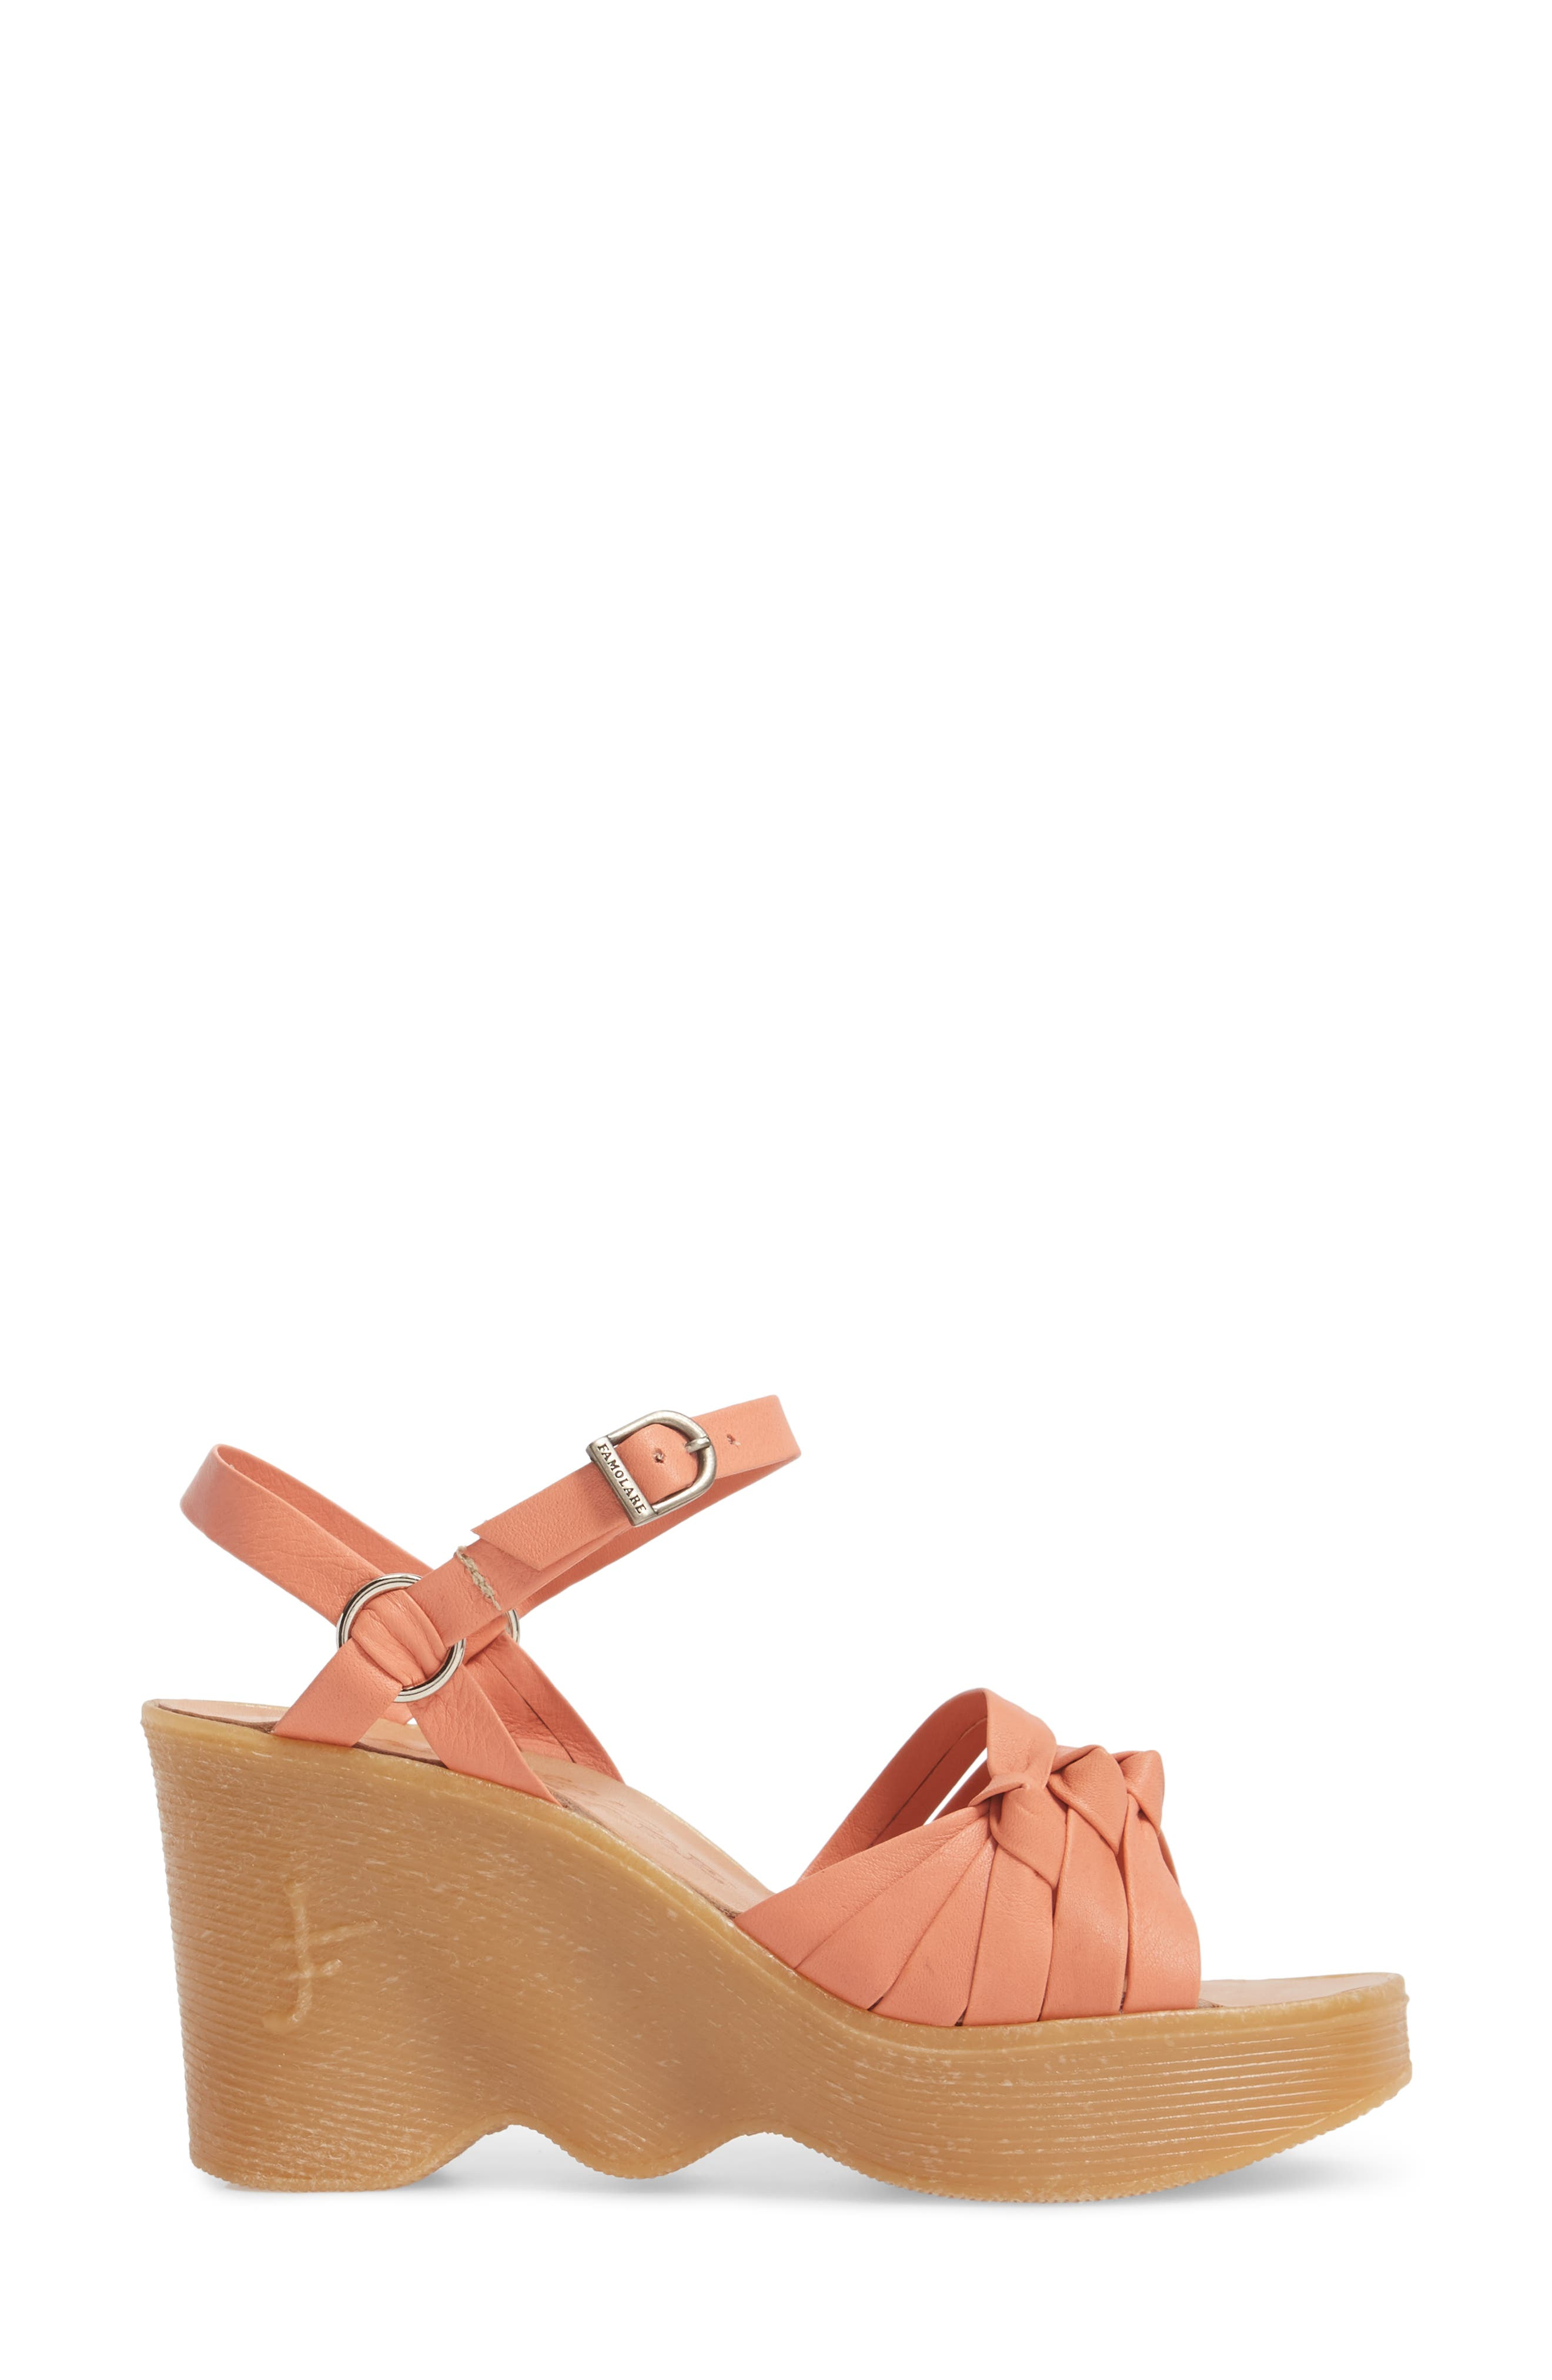 Knot So Fast Wedge Sandal,                             Alternate thumbnail 3, color,                             Salmon Leather